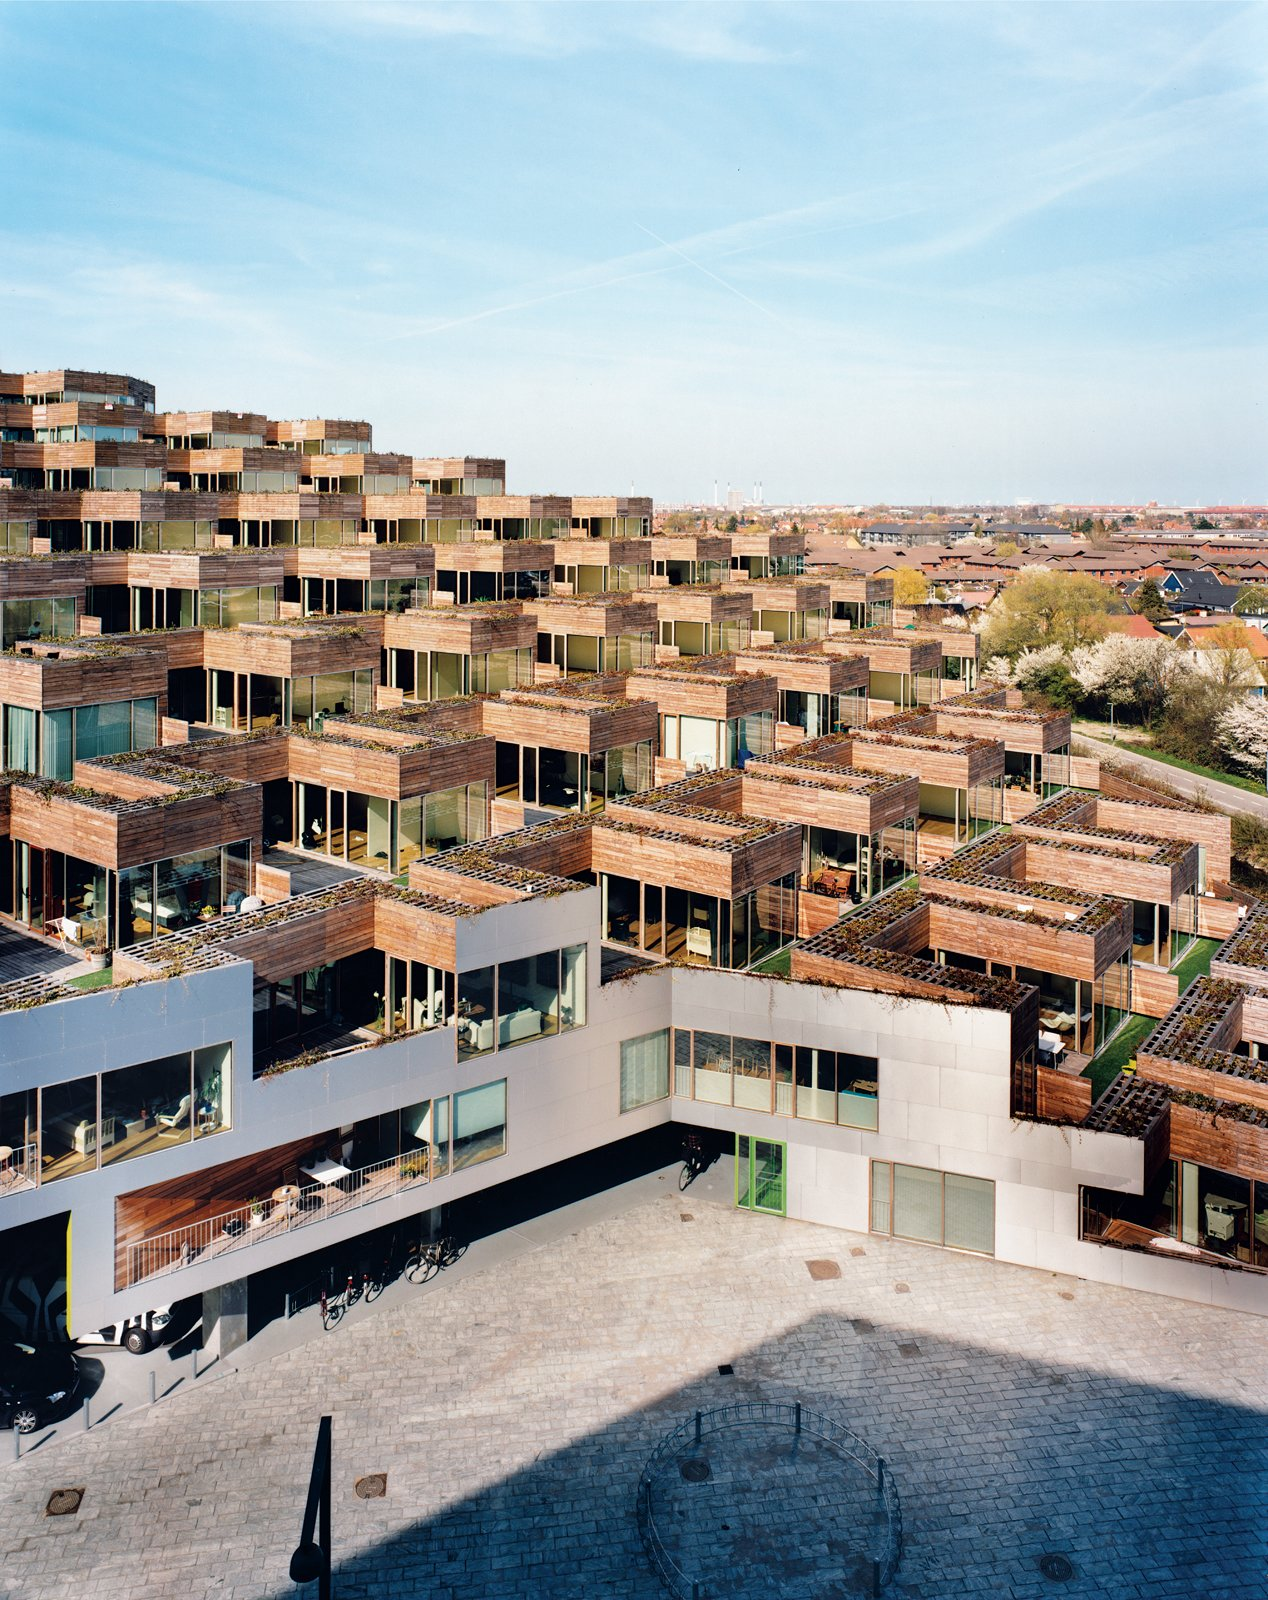 """Every apartment has a terrace measuring around 1,000 square feet, with both private and semipublic spaces. """"The cool thing about a garden is it's yours,"""" says architect Bjarke Ingels. """"If you're on the wooden part, you can suntan in your bikini bottom or go without pants."""" If, however, you walk out onto the artificial turf, you can see what's going on with your neighbors (and they can see you).  Photo 4 of 20 in Mountain Dwellings Urban Development in Copenhagen"""